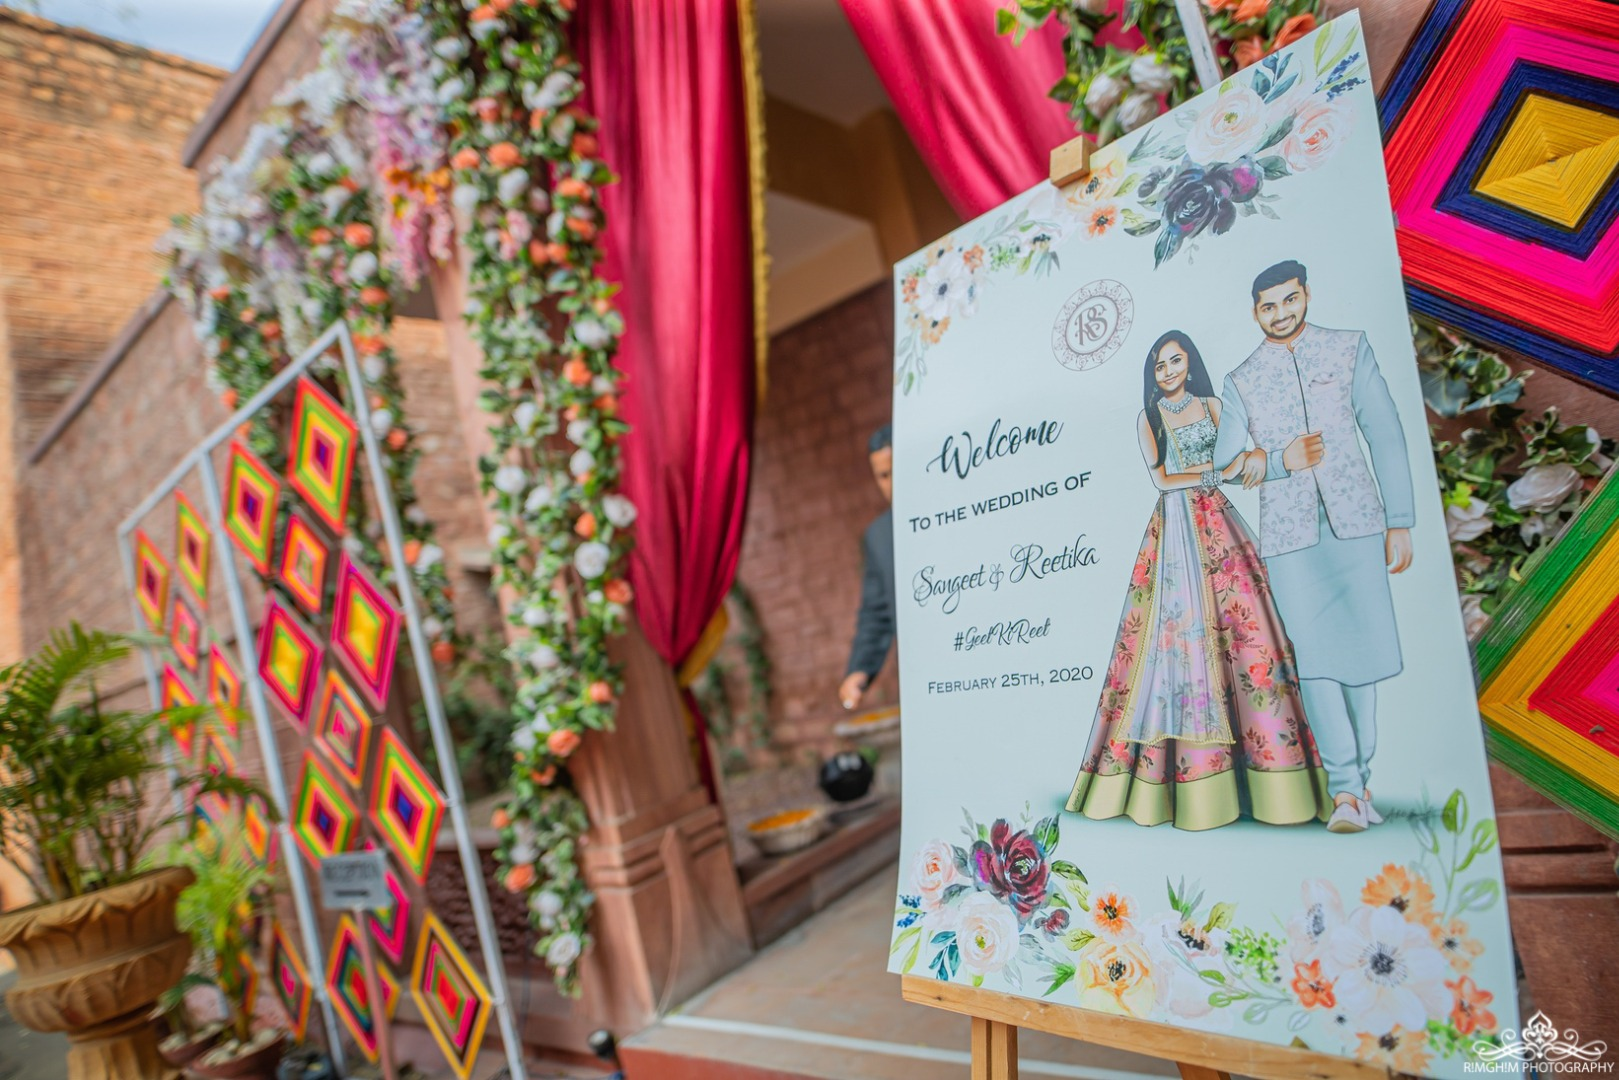 Cute Sangeet Ceremony Welcome Signboard